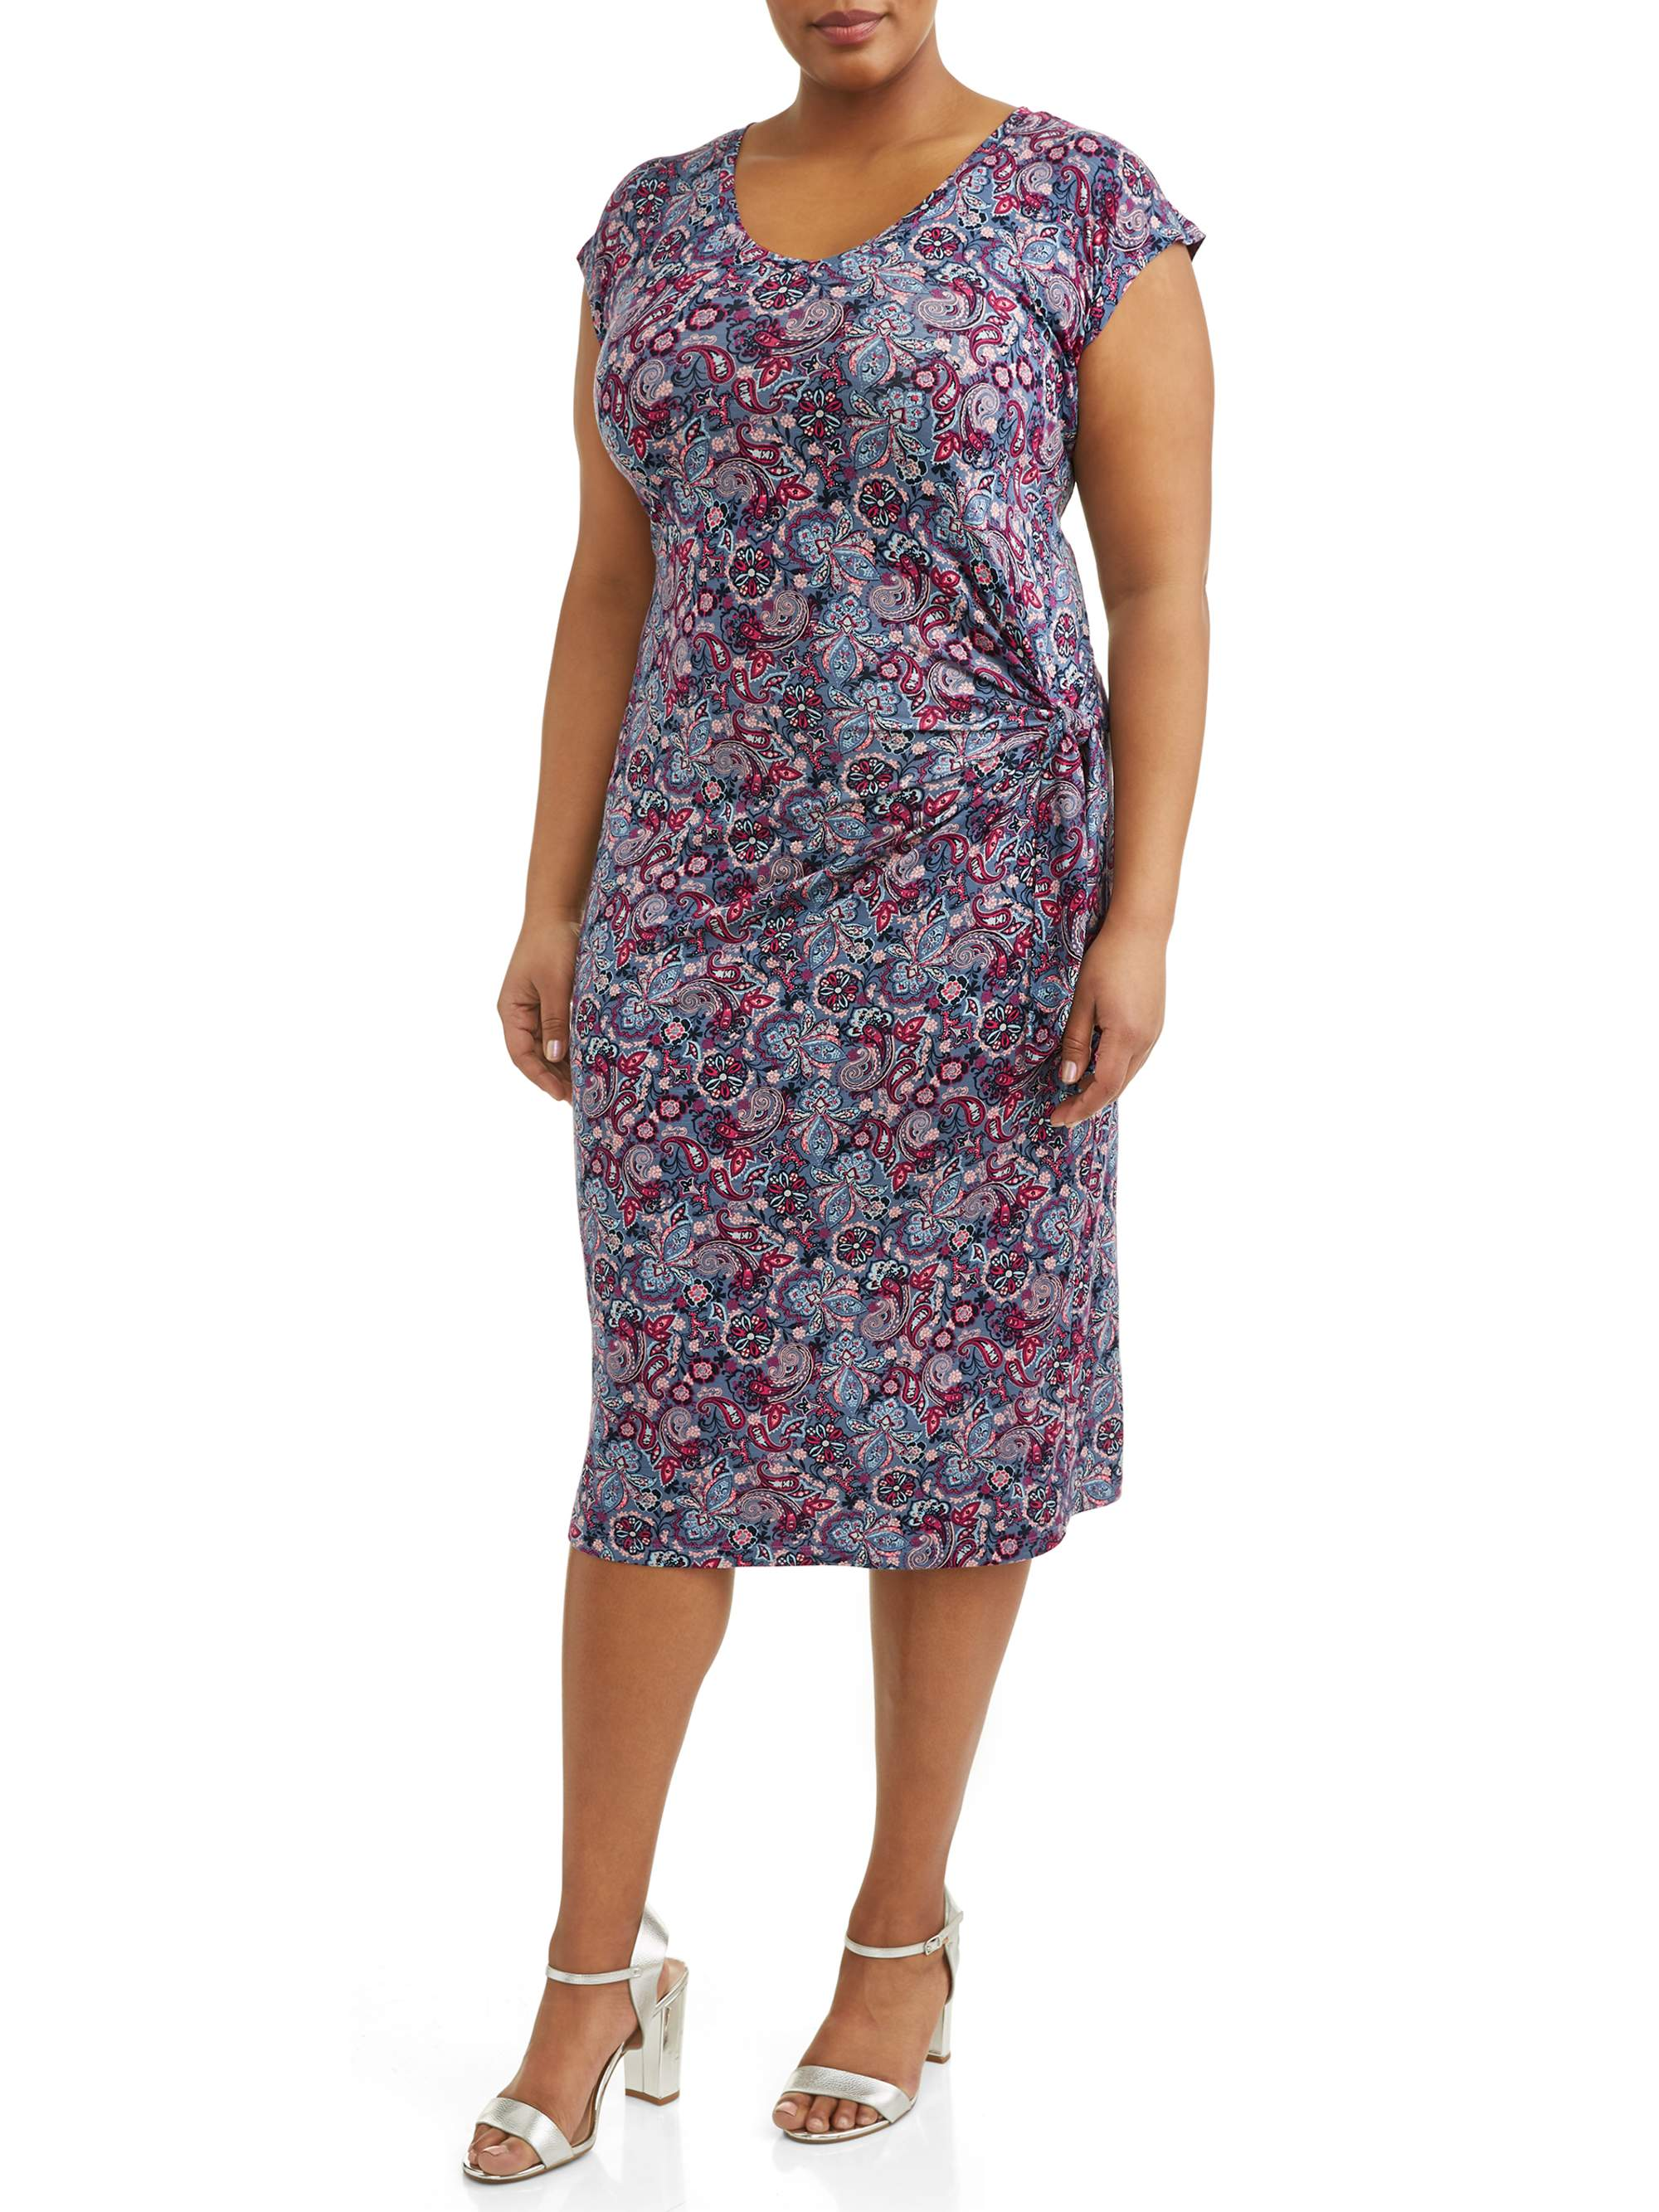 Women's Plus Size Short Sleeve Wrap Tie Knit Dress